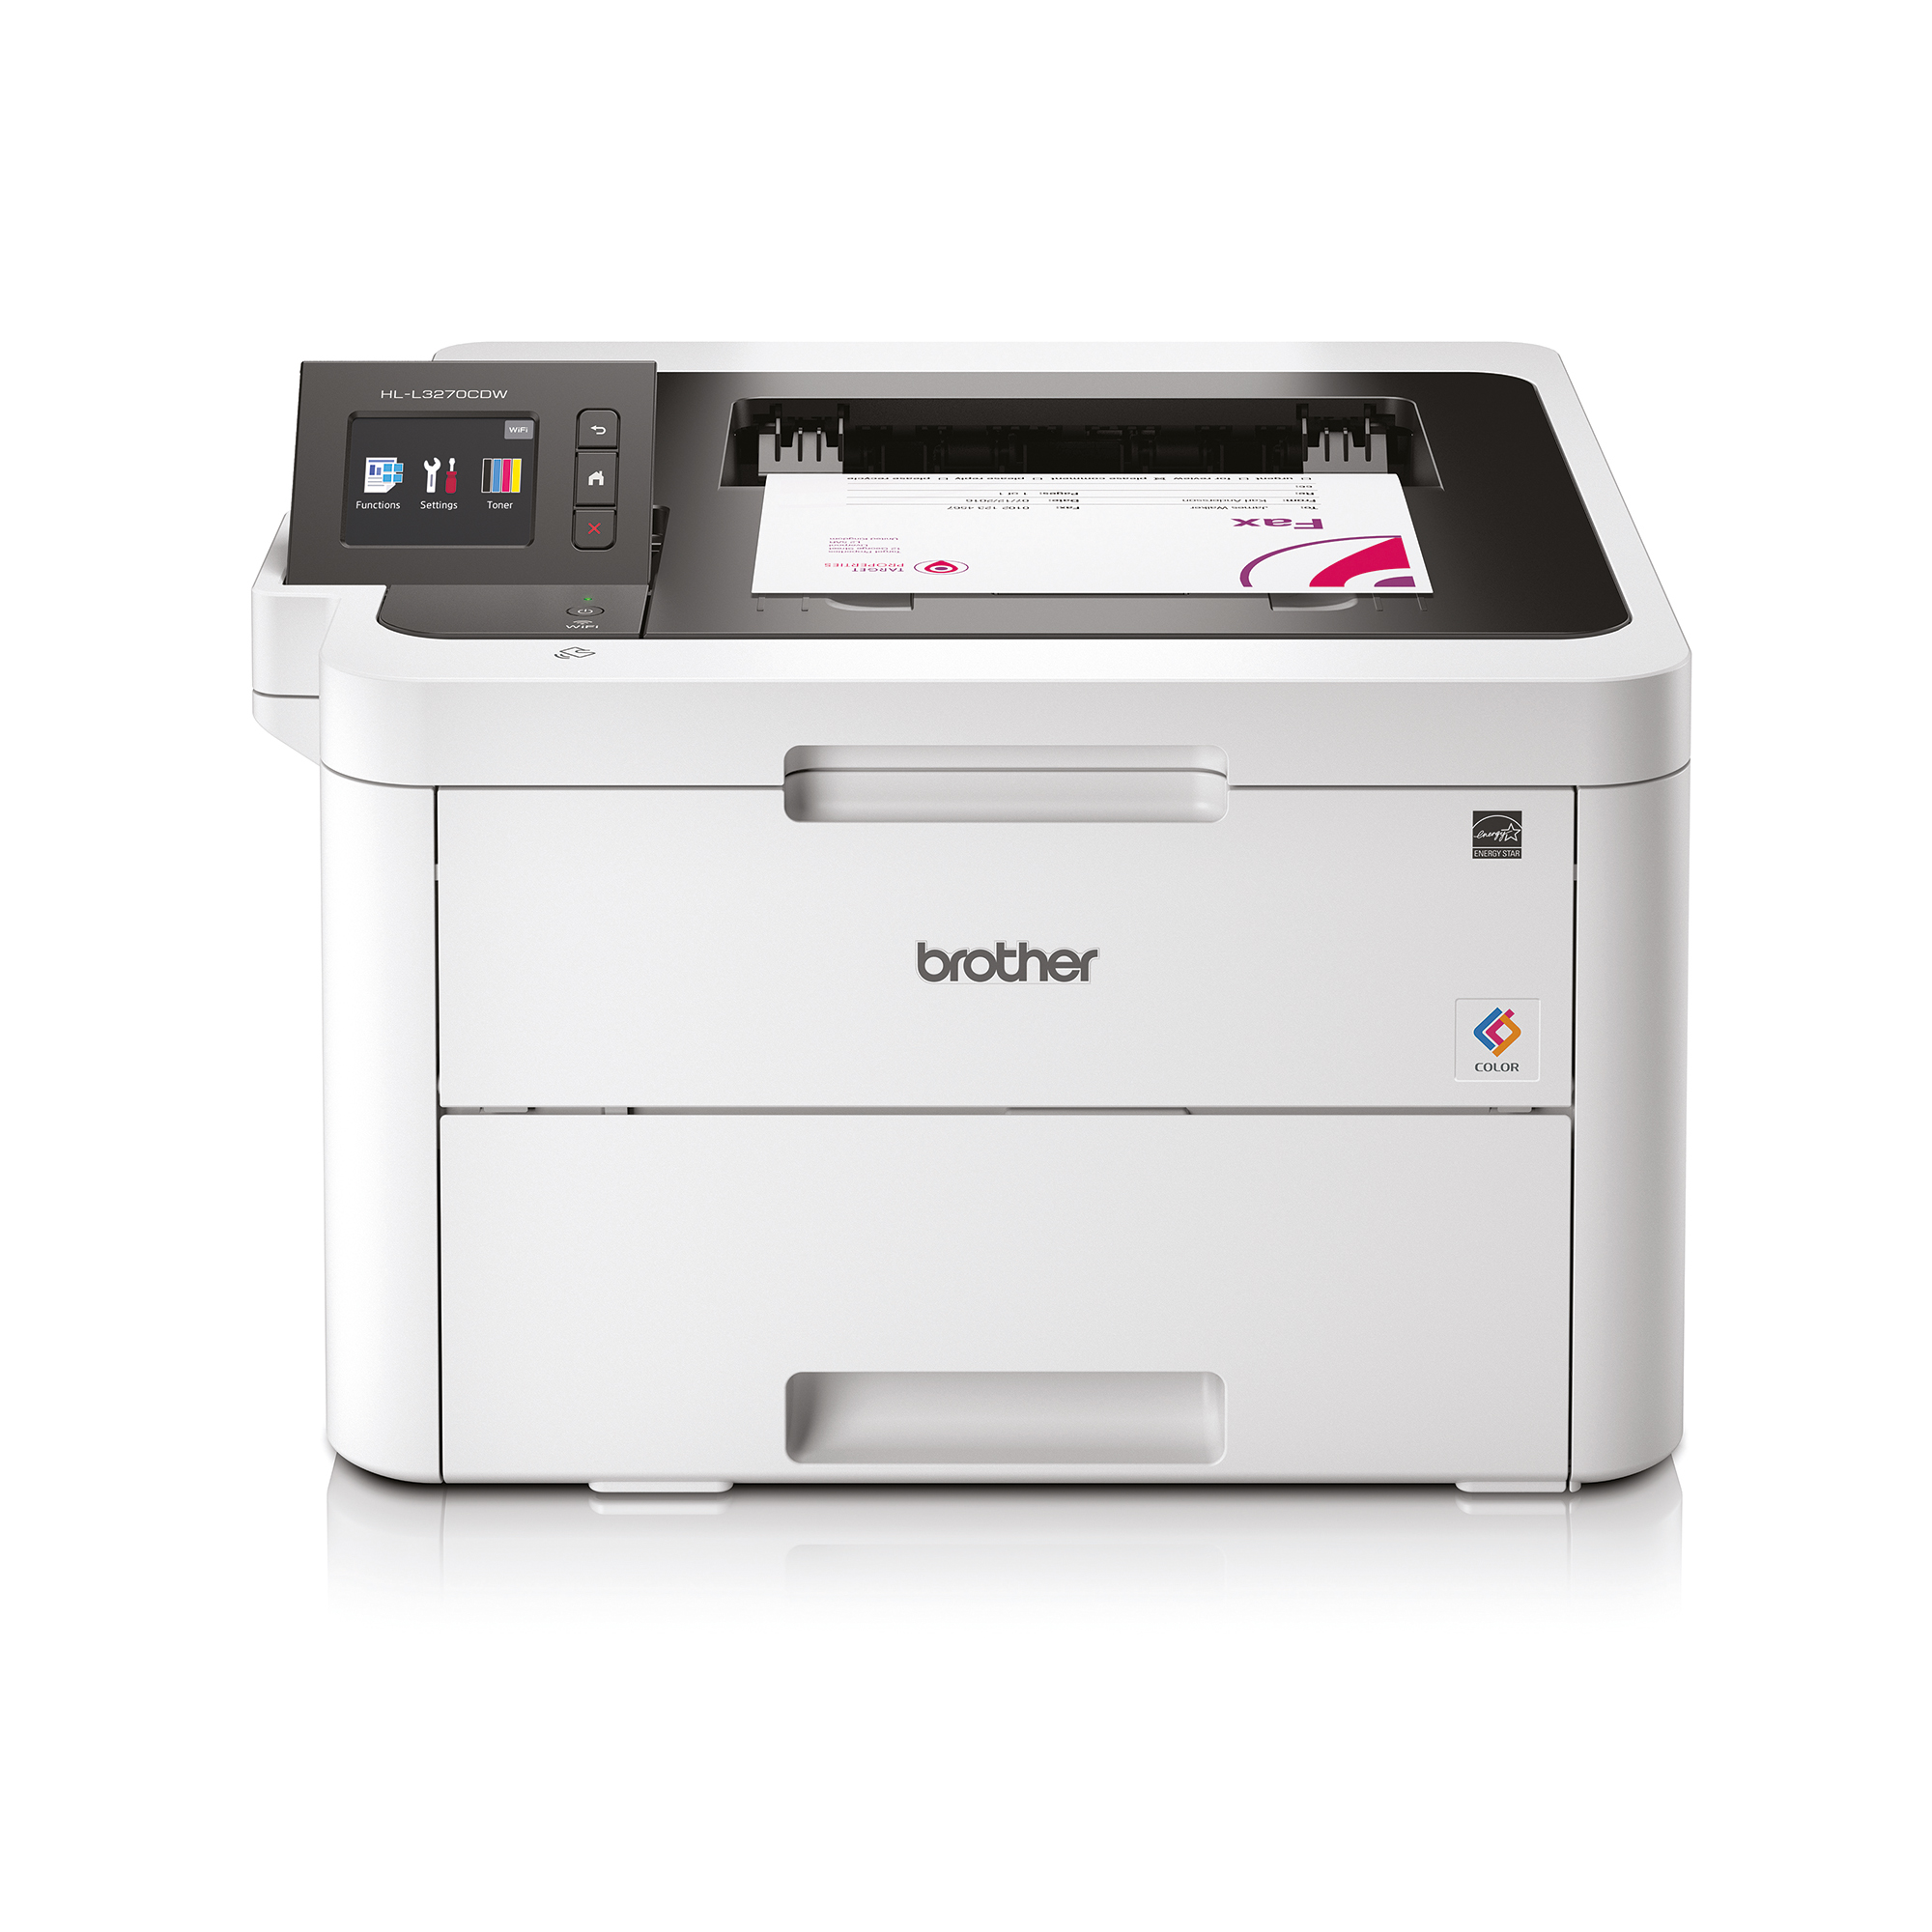 Laser printers Brother HL-L3270CDW Colour Laser A4 Printer with Wi-Fi Network Ref HLL3270CDW